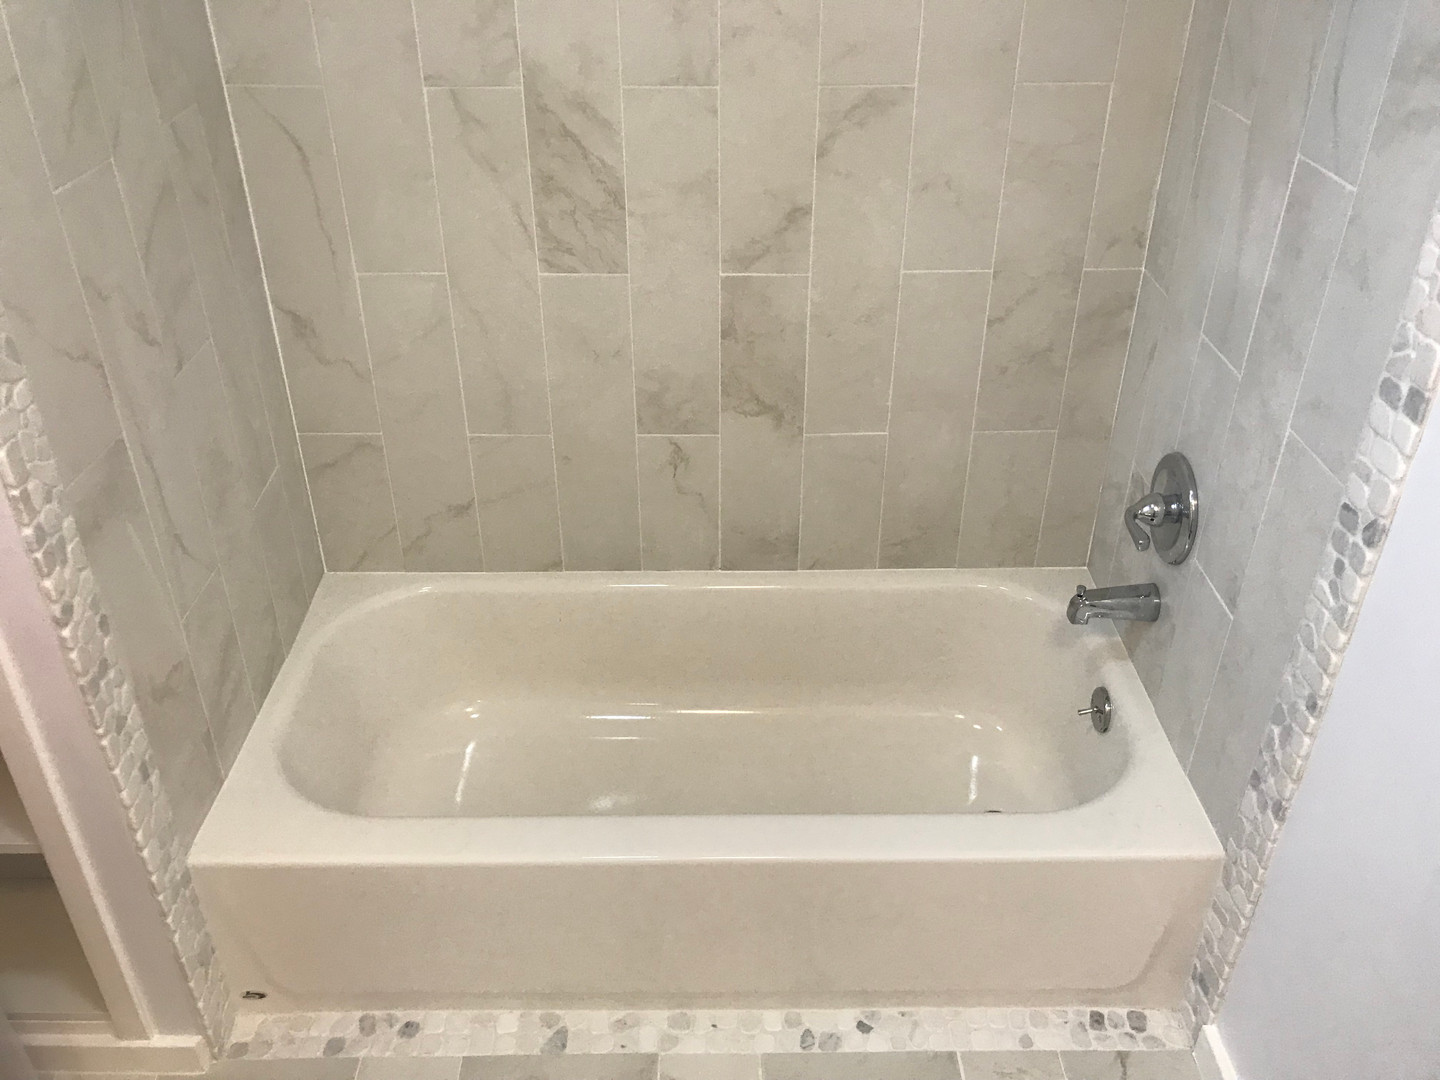 New tiled tub surround